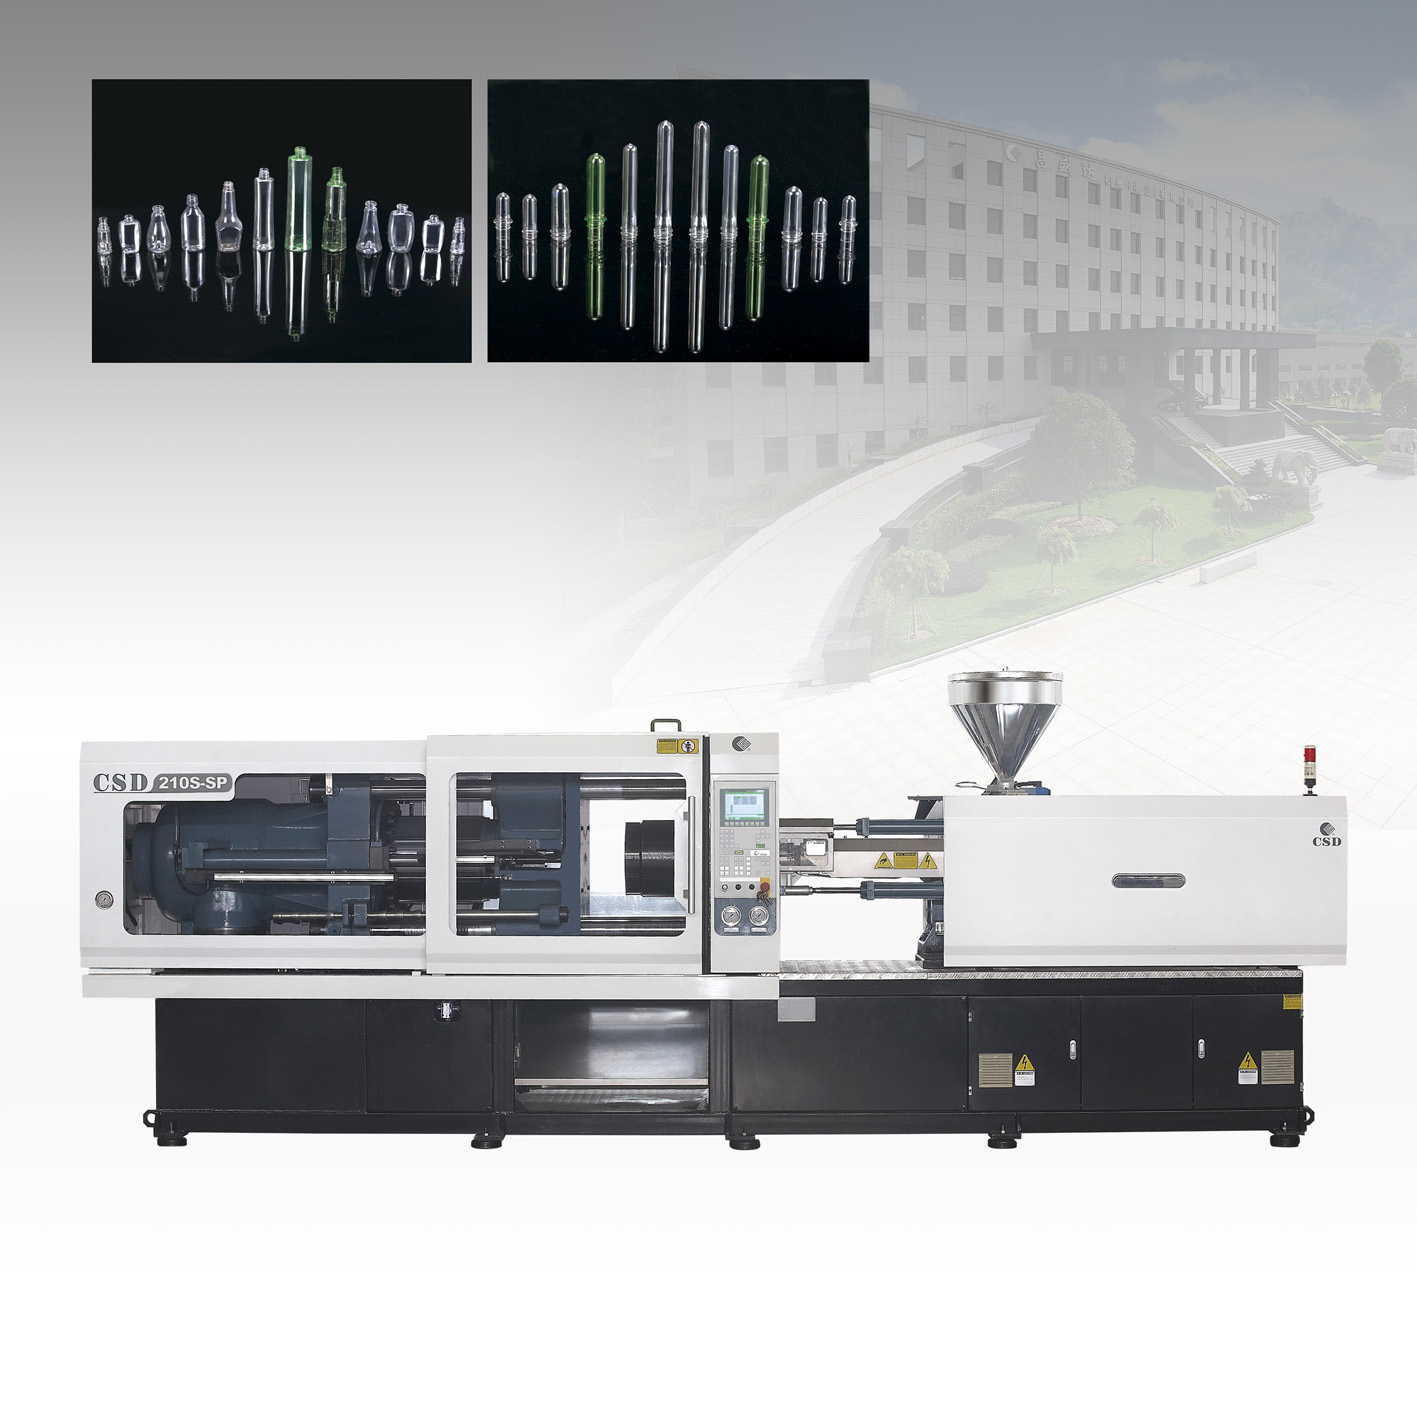 CE Approved with SP Series High Precision & Direct Pressure Injection Molding Machine (50-300T) (CSD-210S-SP)